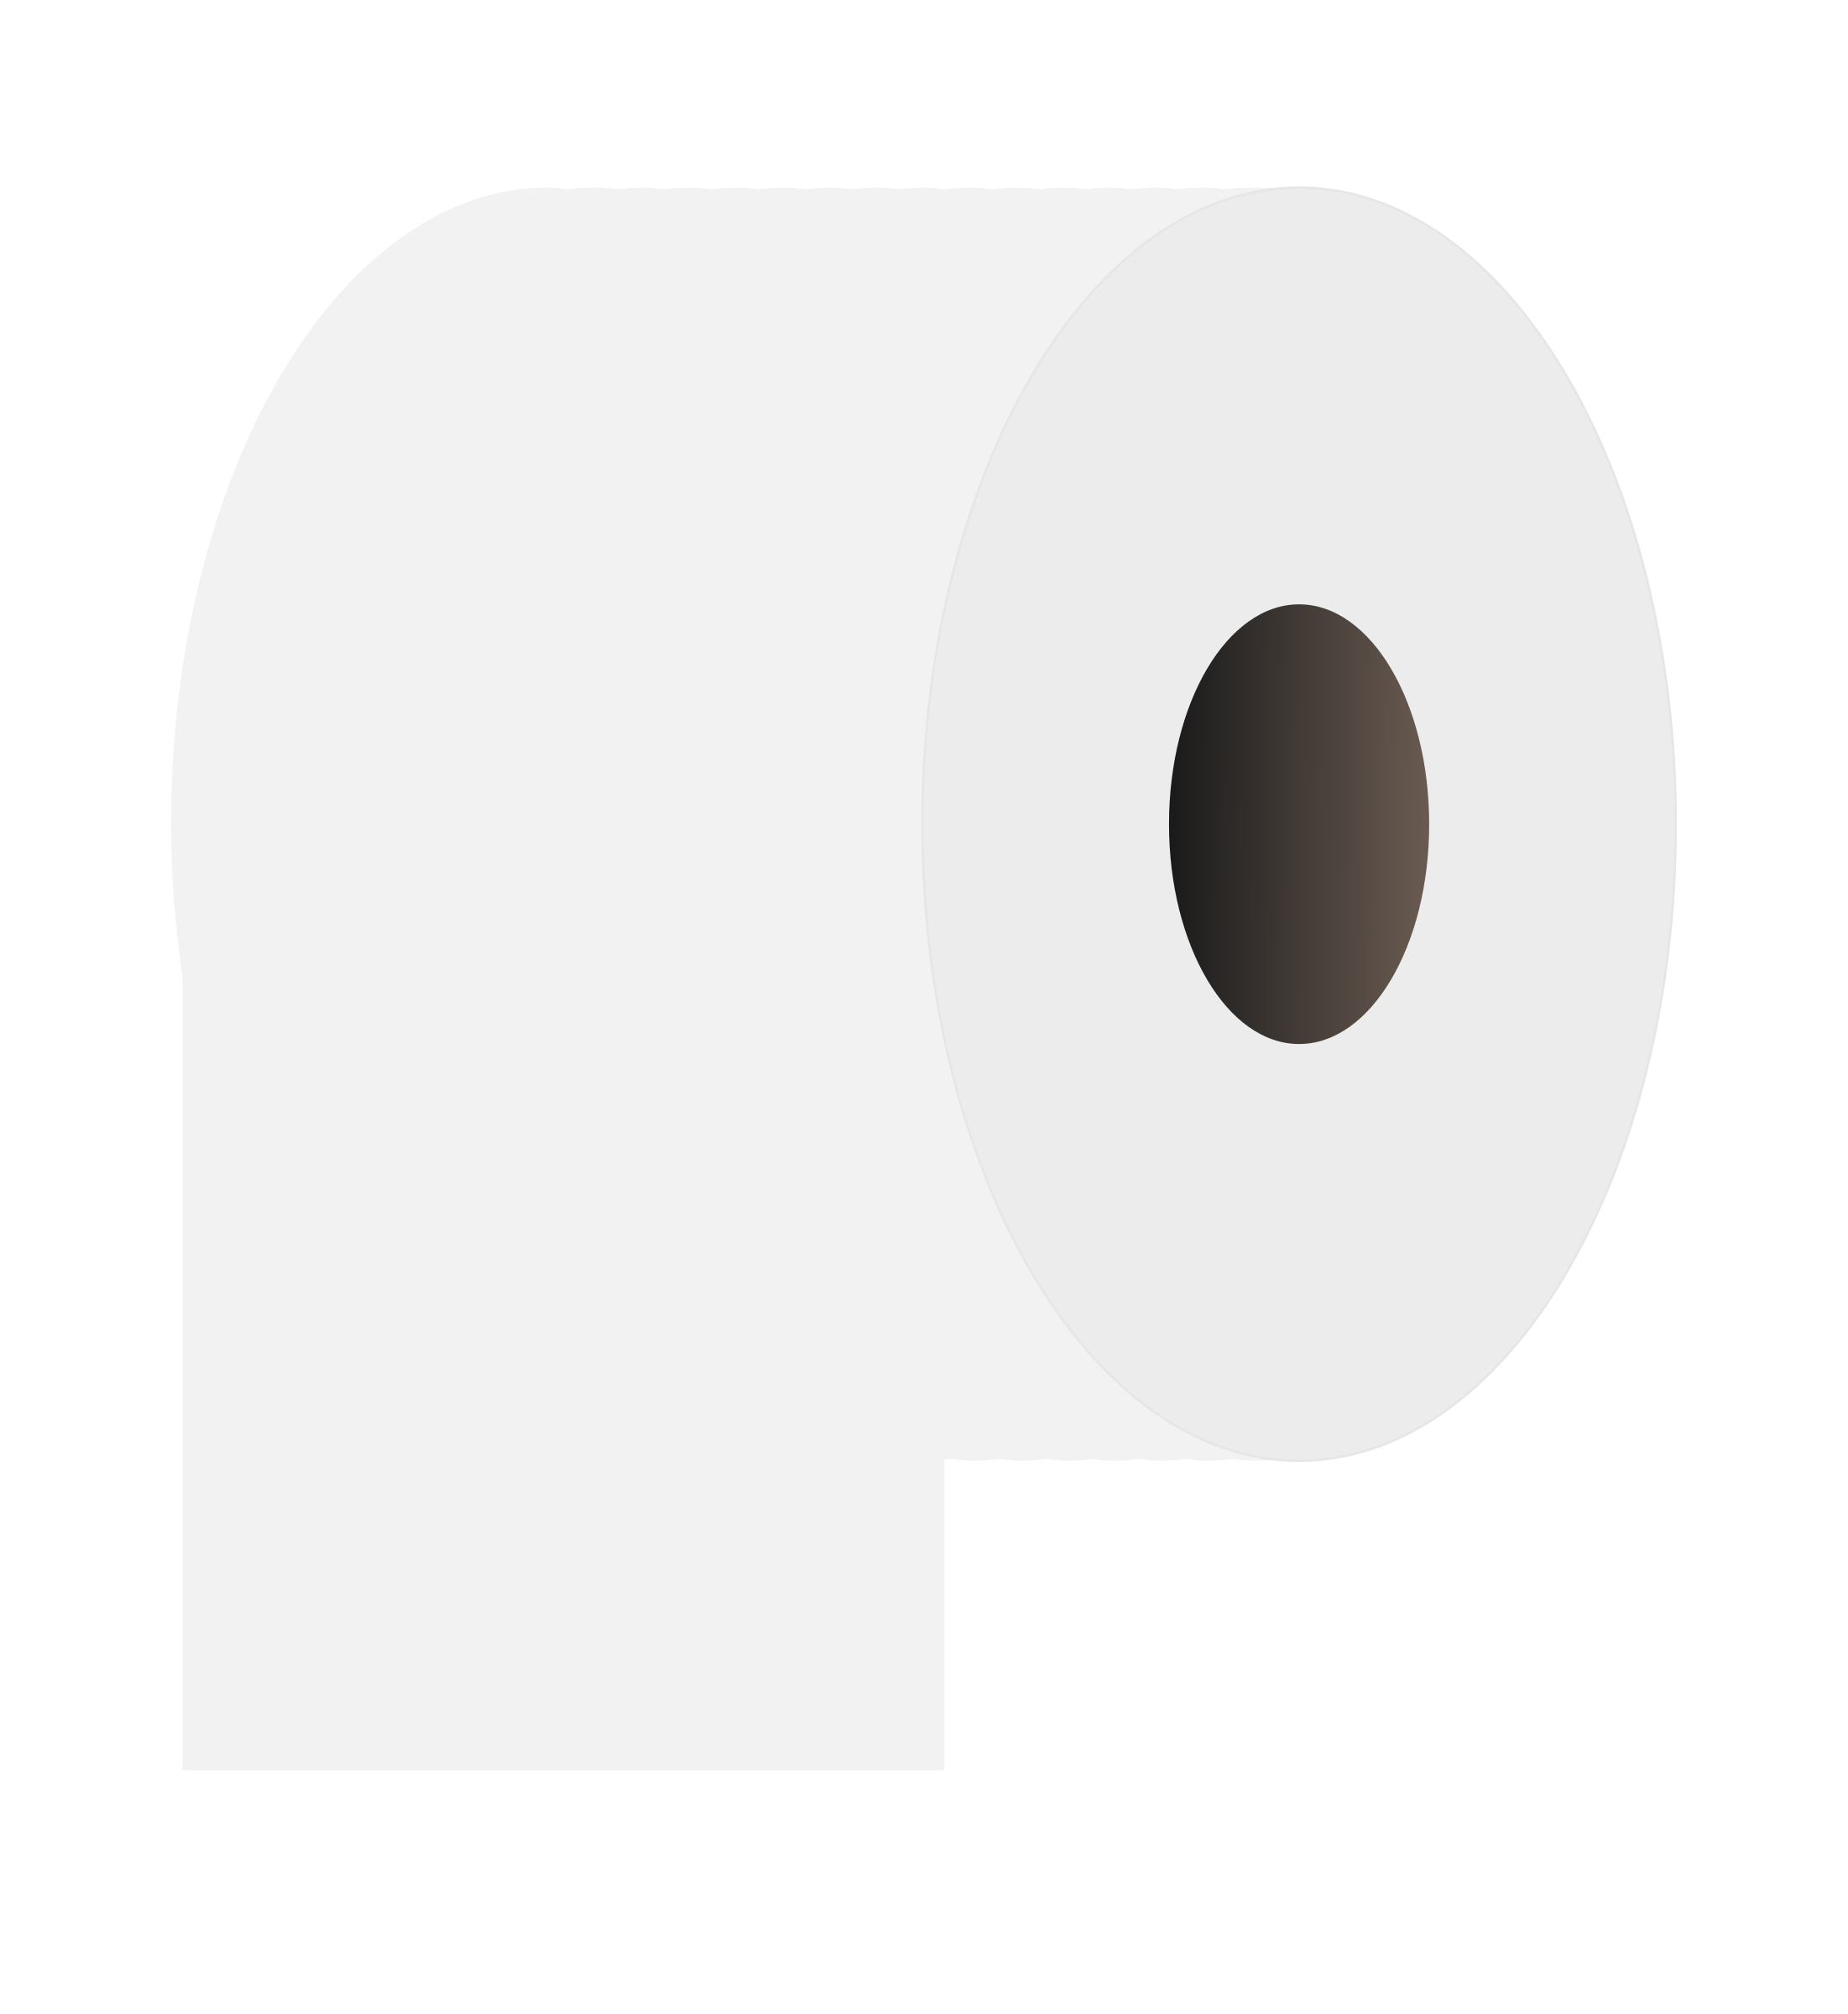 Clipart - Toilet paper roll white